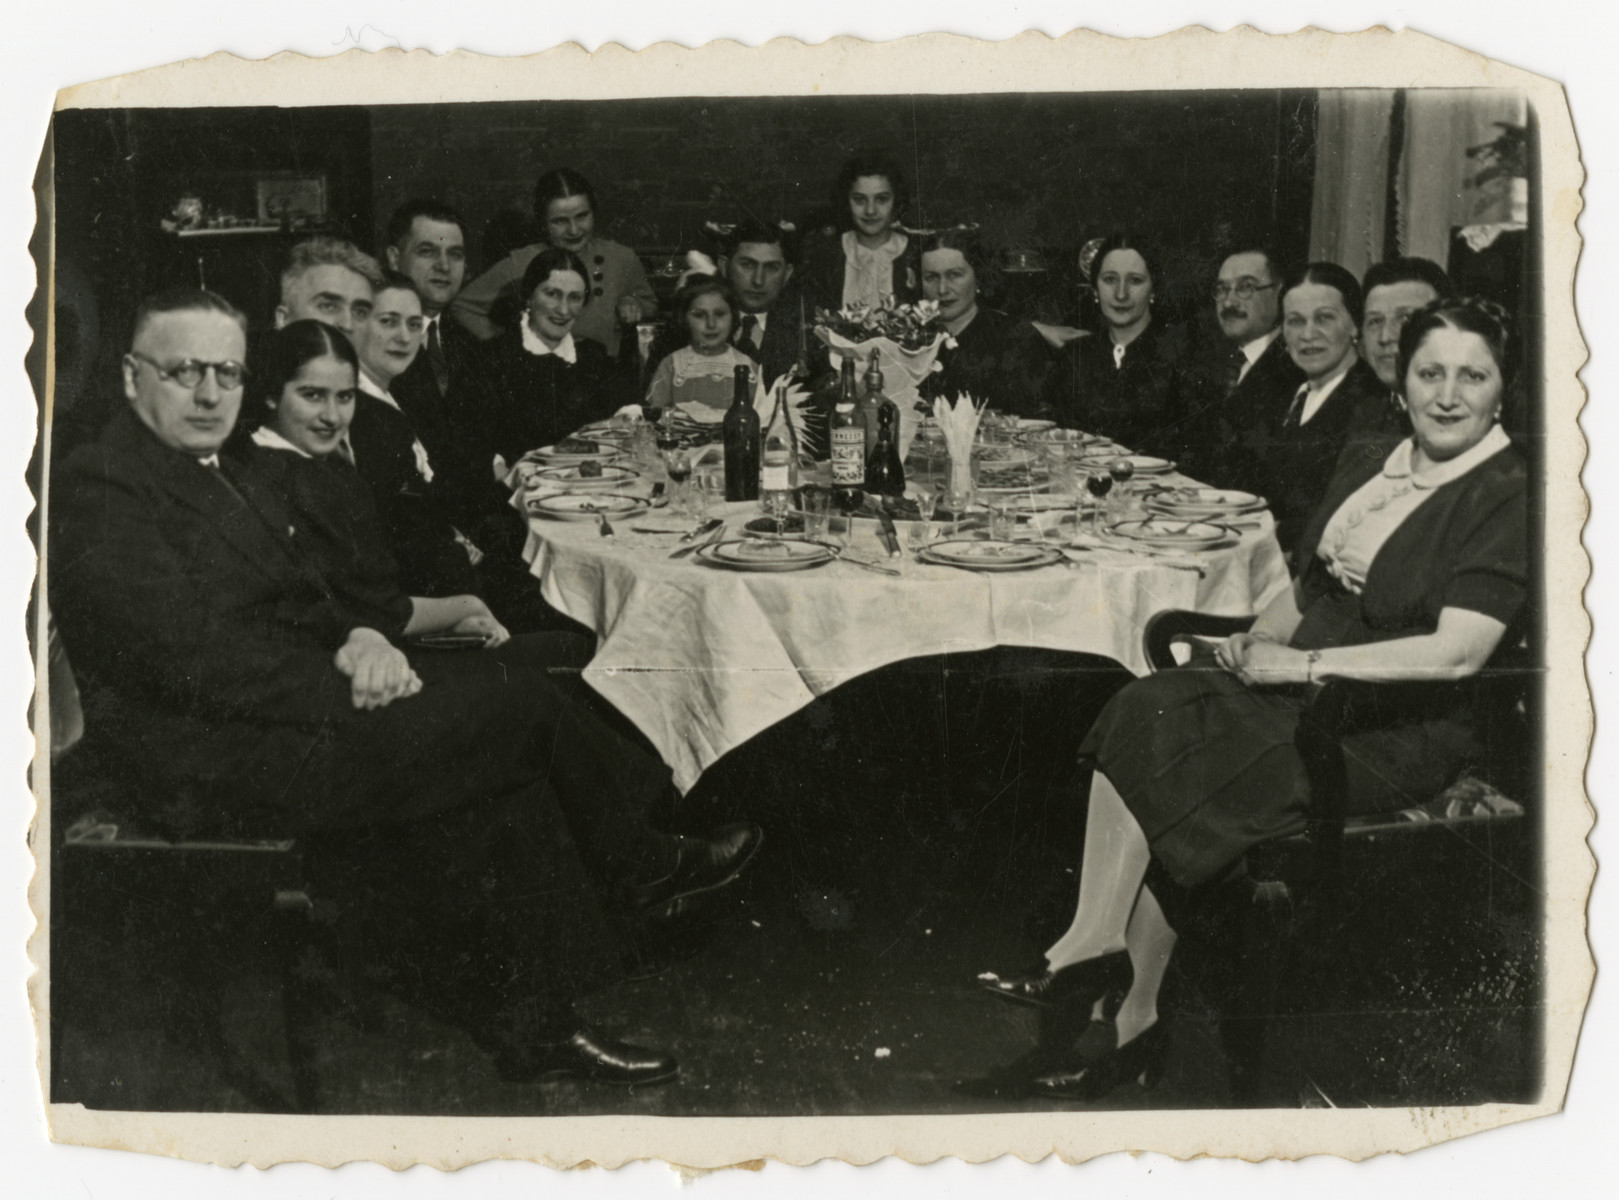 The Wajcblum and Jaglom families gather for a Passover seder in Brest.  Estusia Wajcblum is standing in the center, rear.  Seated at the head of the table is Moise Jaglom is holding his daughter Jeannette.  His wife Klara  is on the right with the pearl earrings.